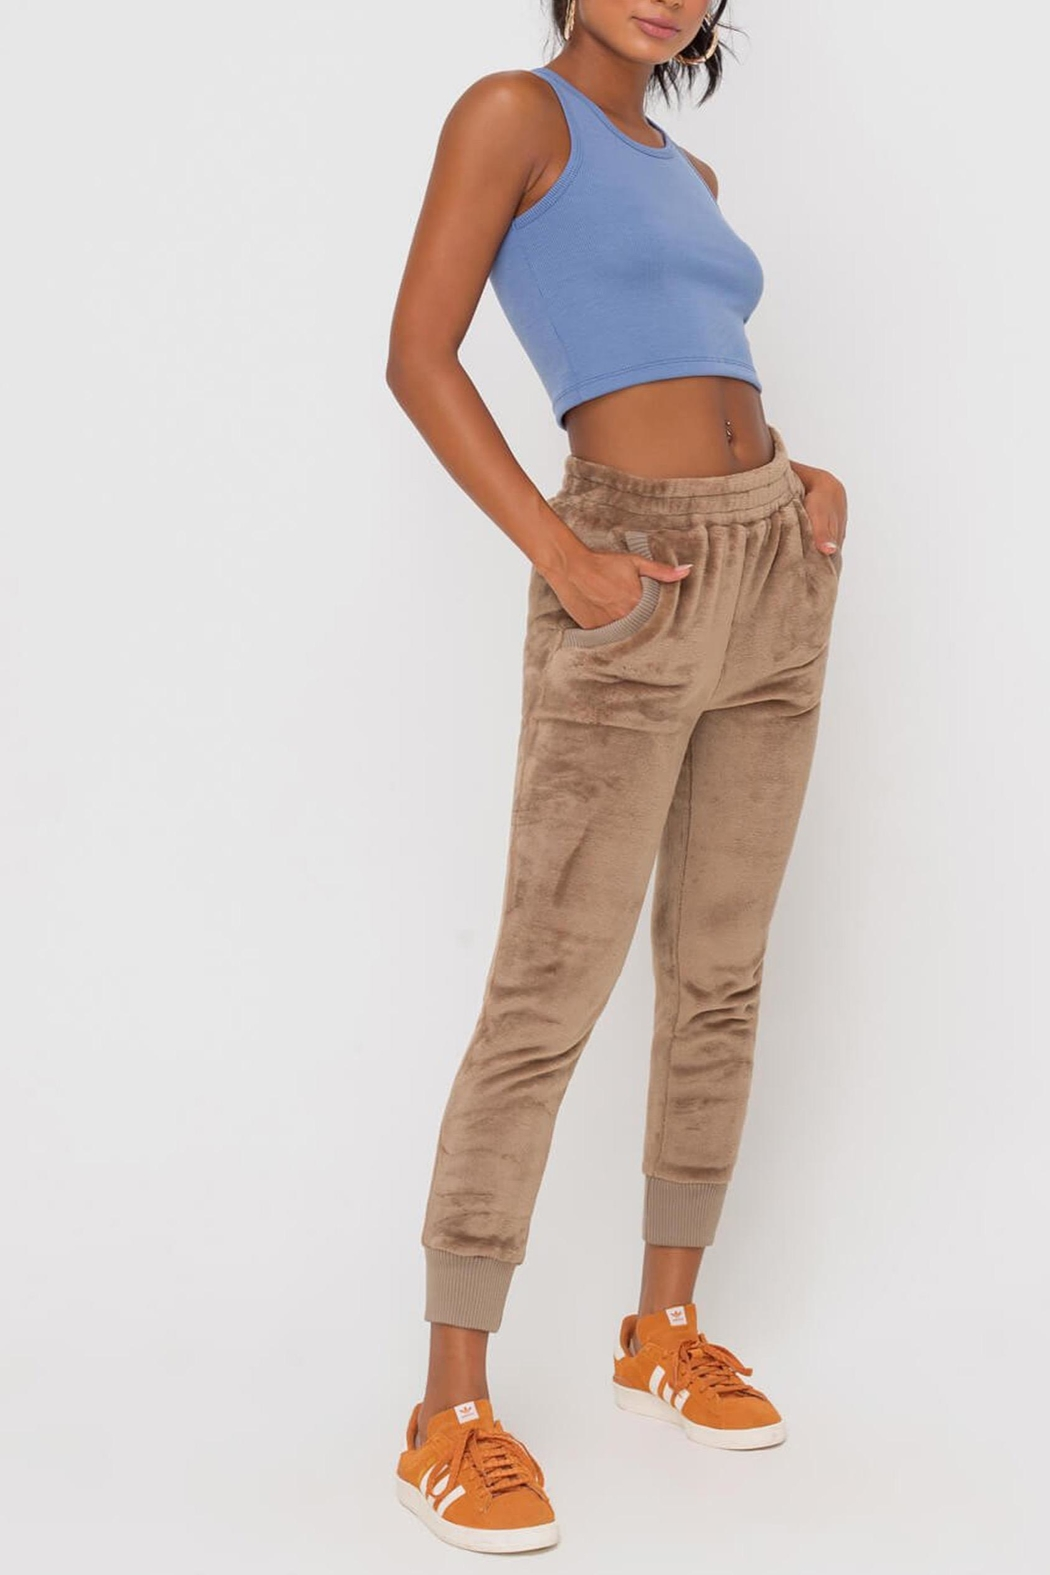 Lush Clothing  Faux-Fur Cuffed Jogger-Pants - Side Cropped Image